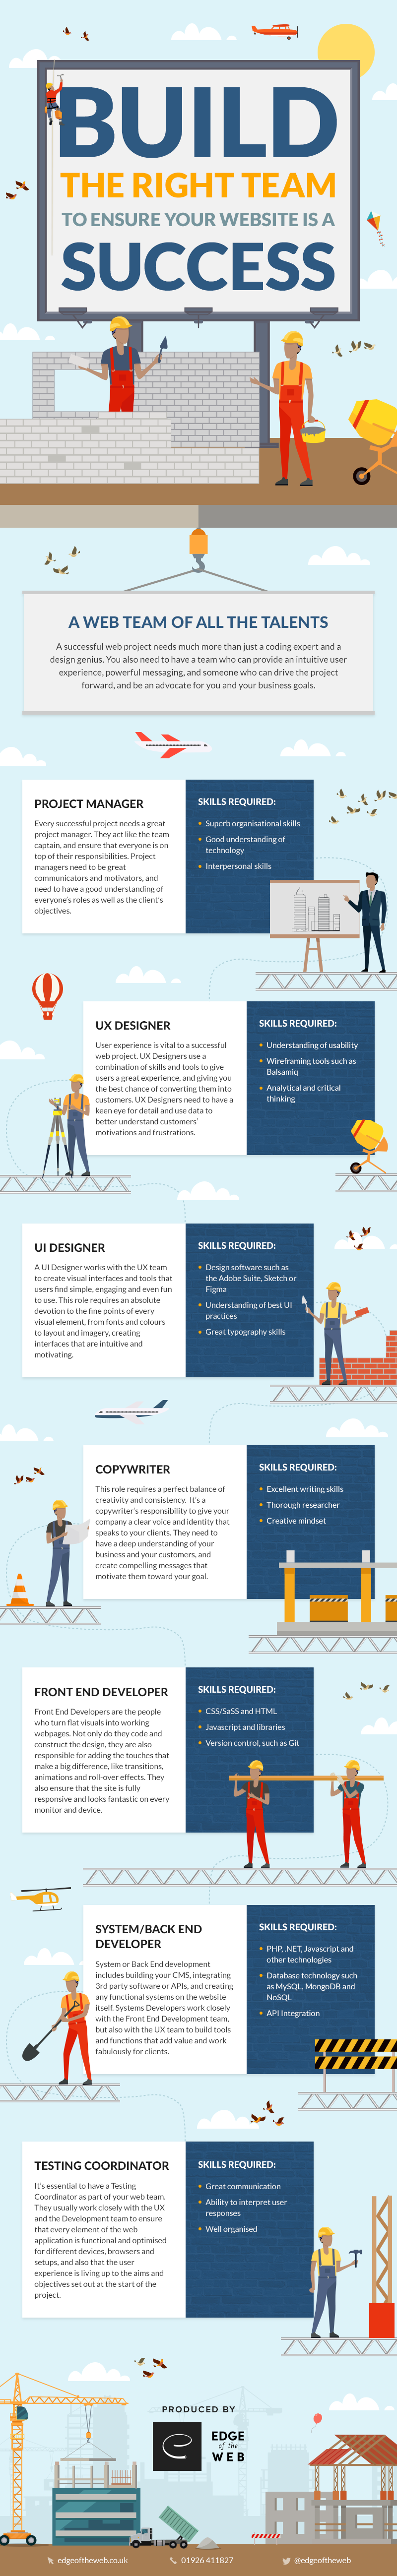 How to build the right web development team [Infographic]